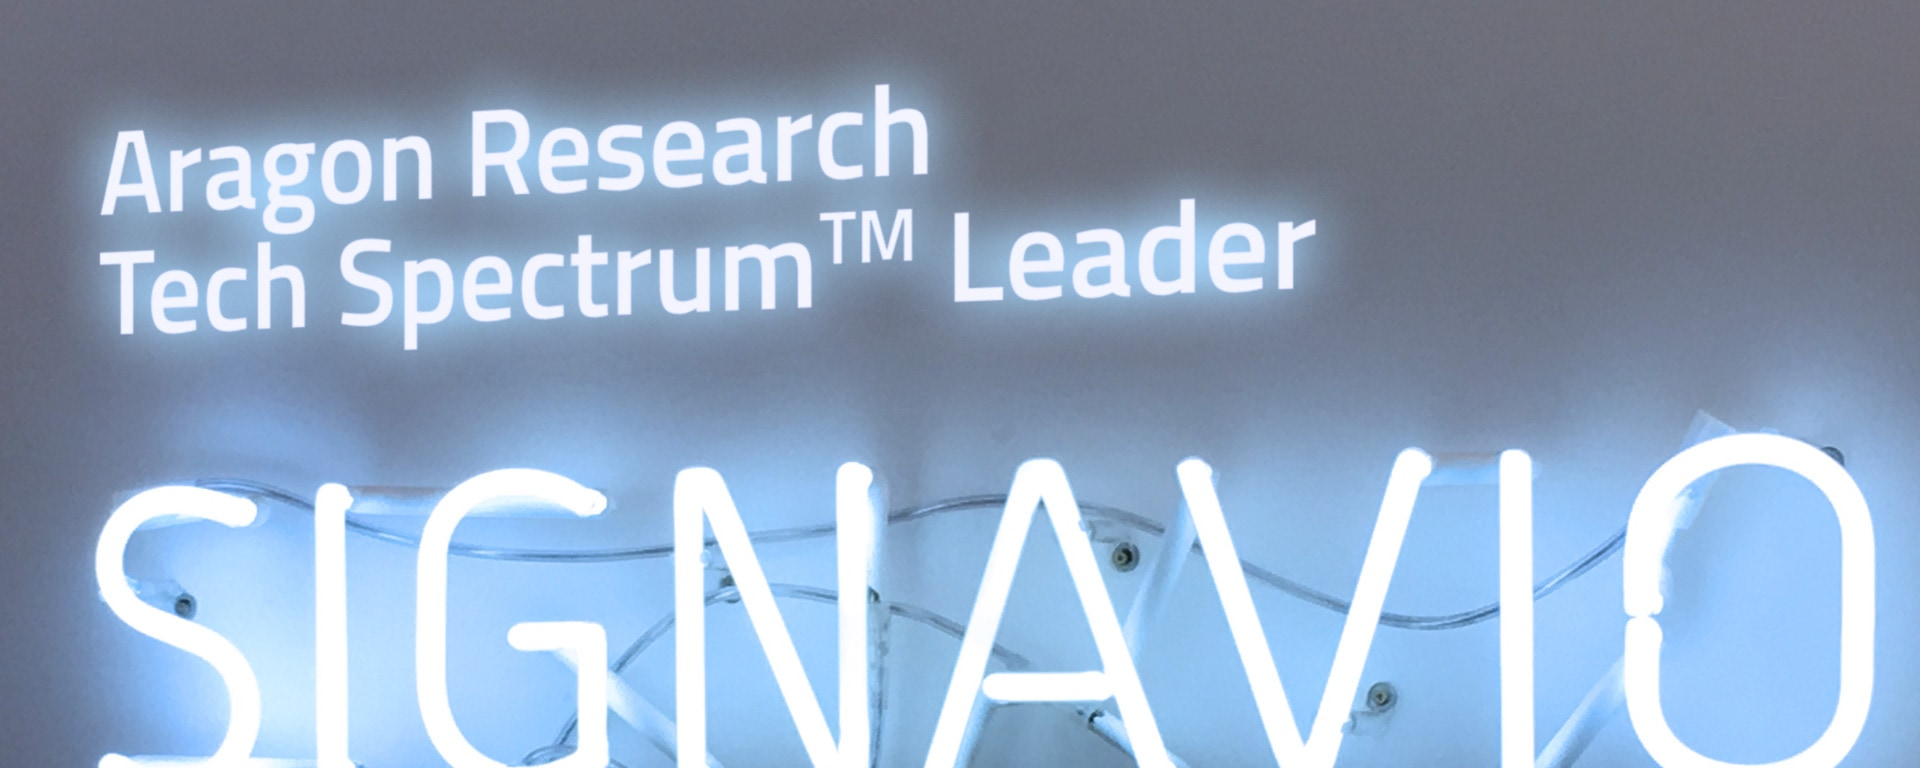 Tech Spectrum™ Leader 2019 sign